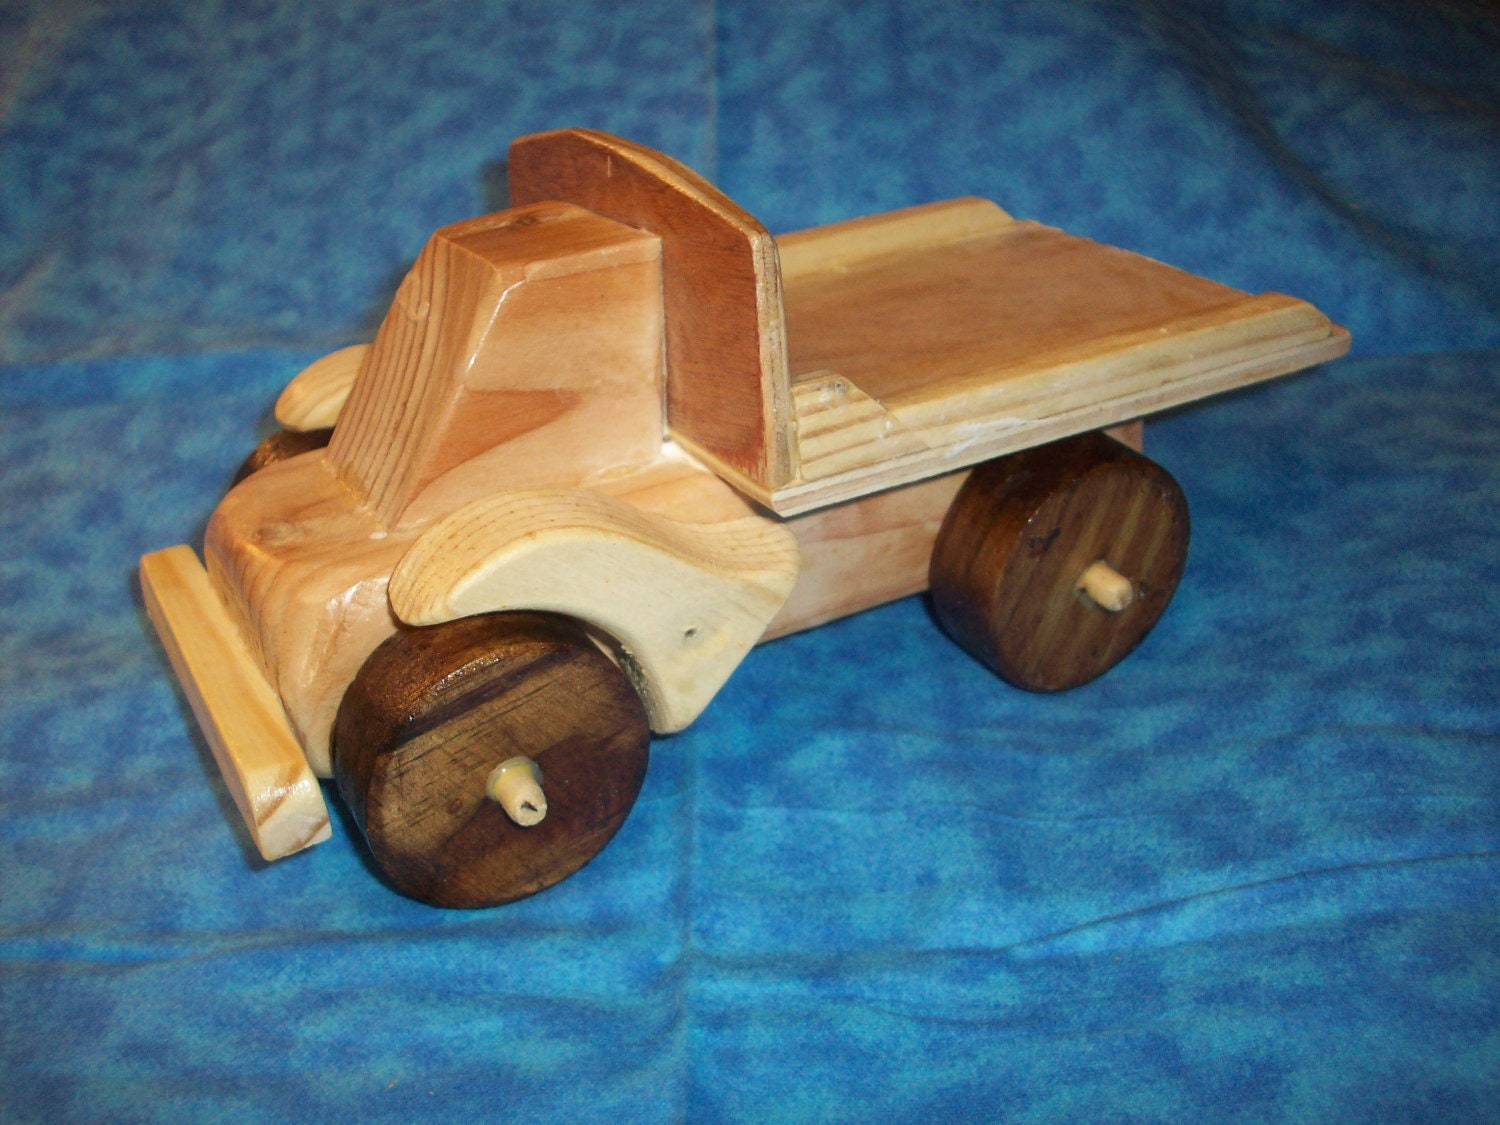 Wood Dump Truck from Kerrific Etsy Shop